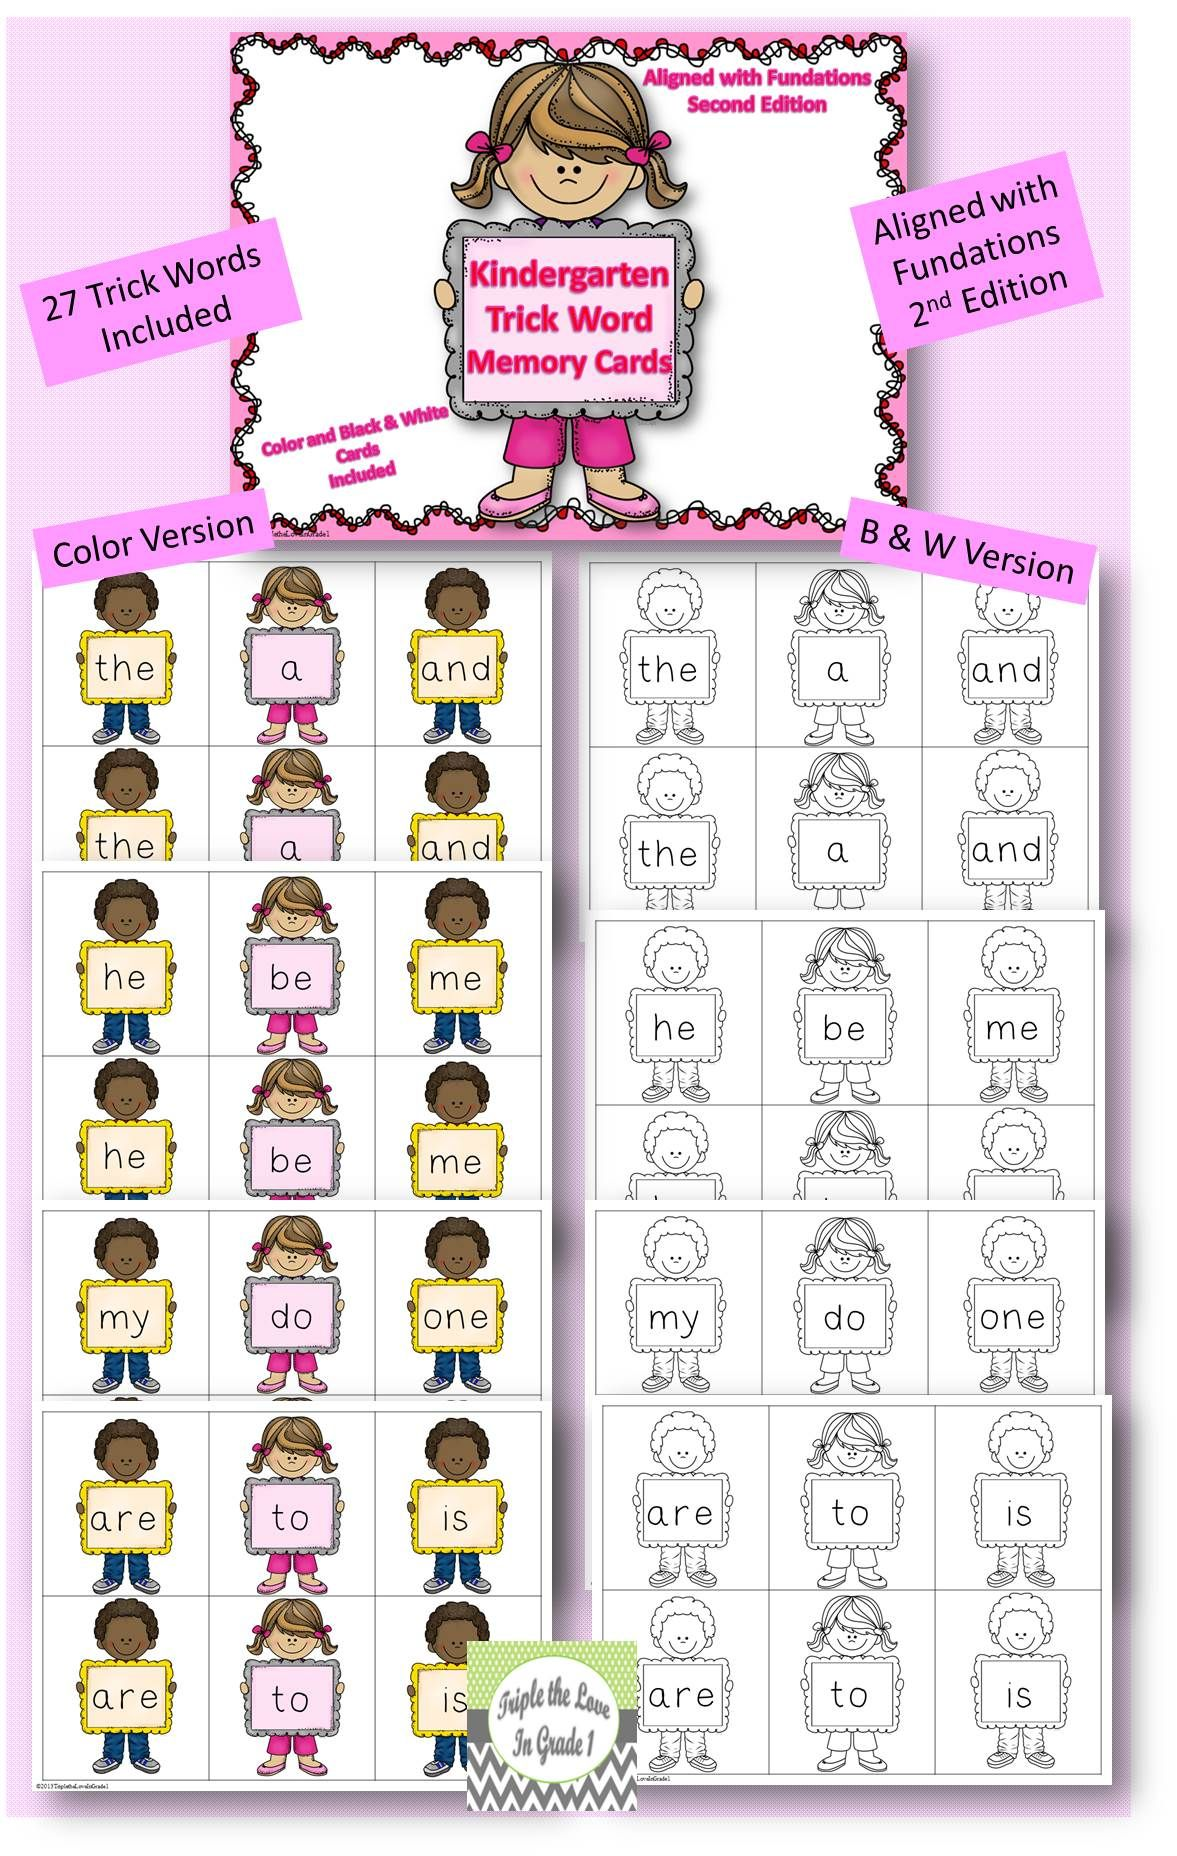 ABC Song MP3 ABC Chart – Fundations Worksheets Kindergarten